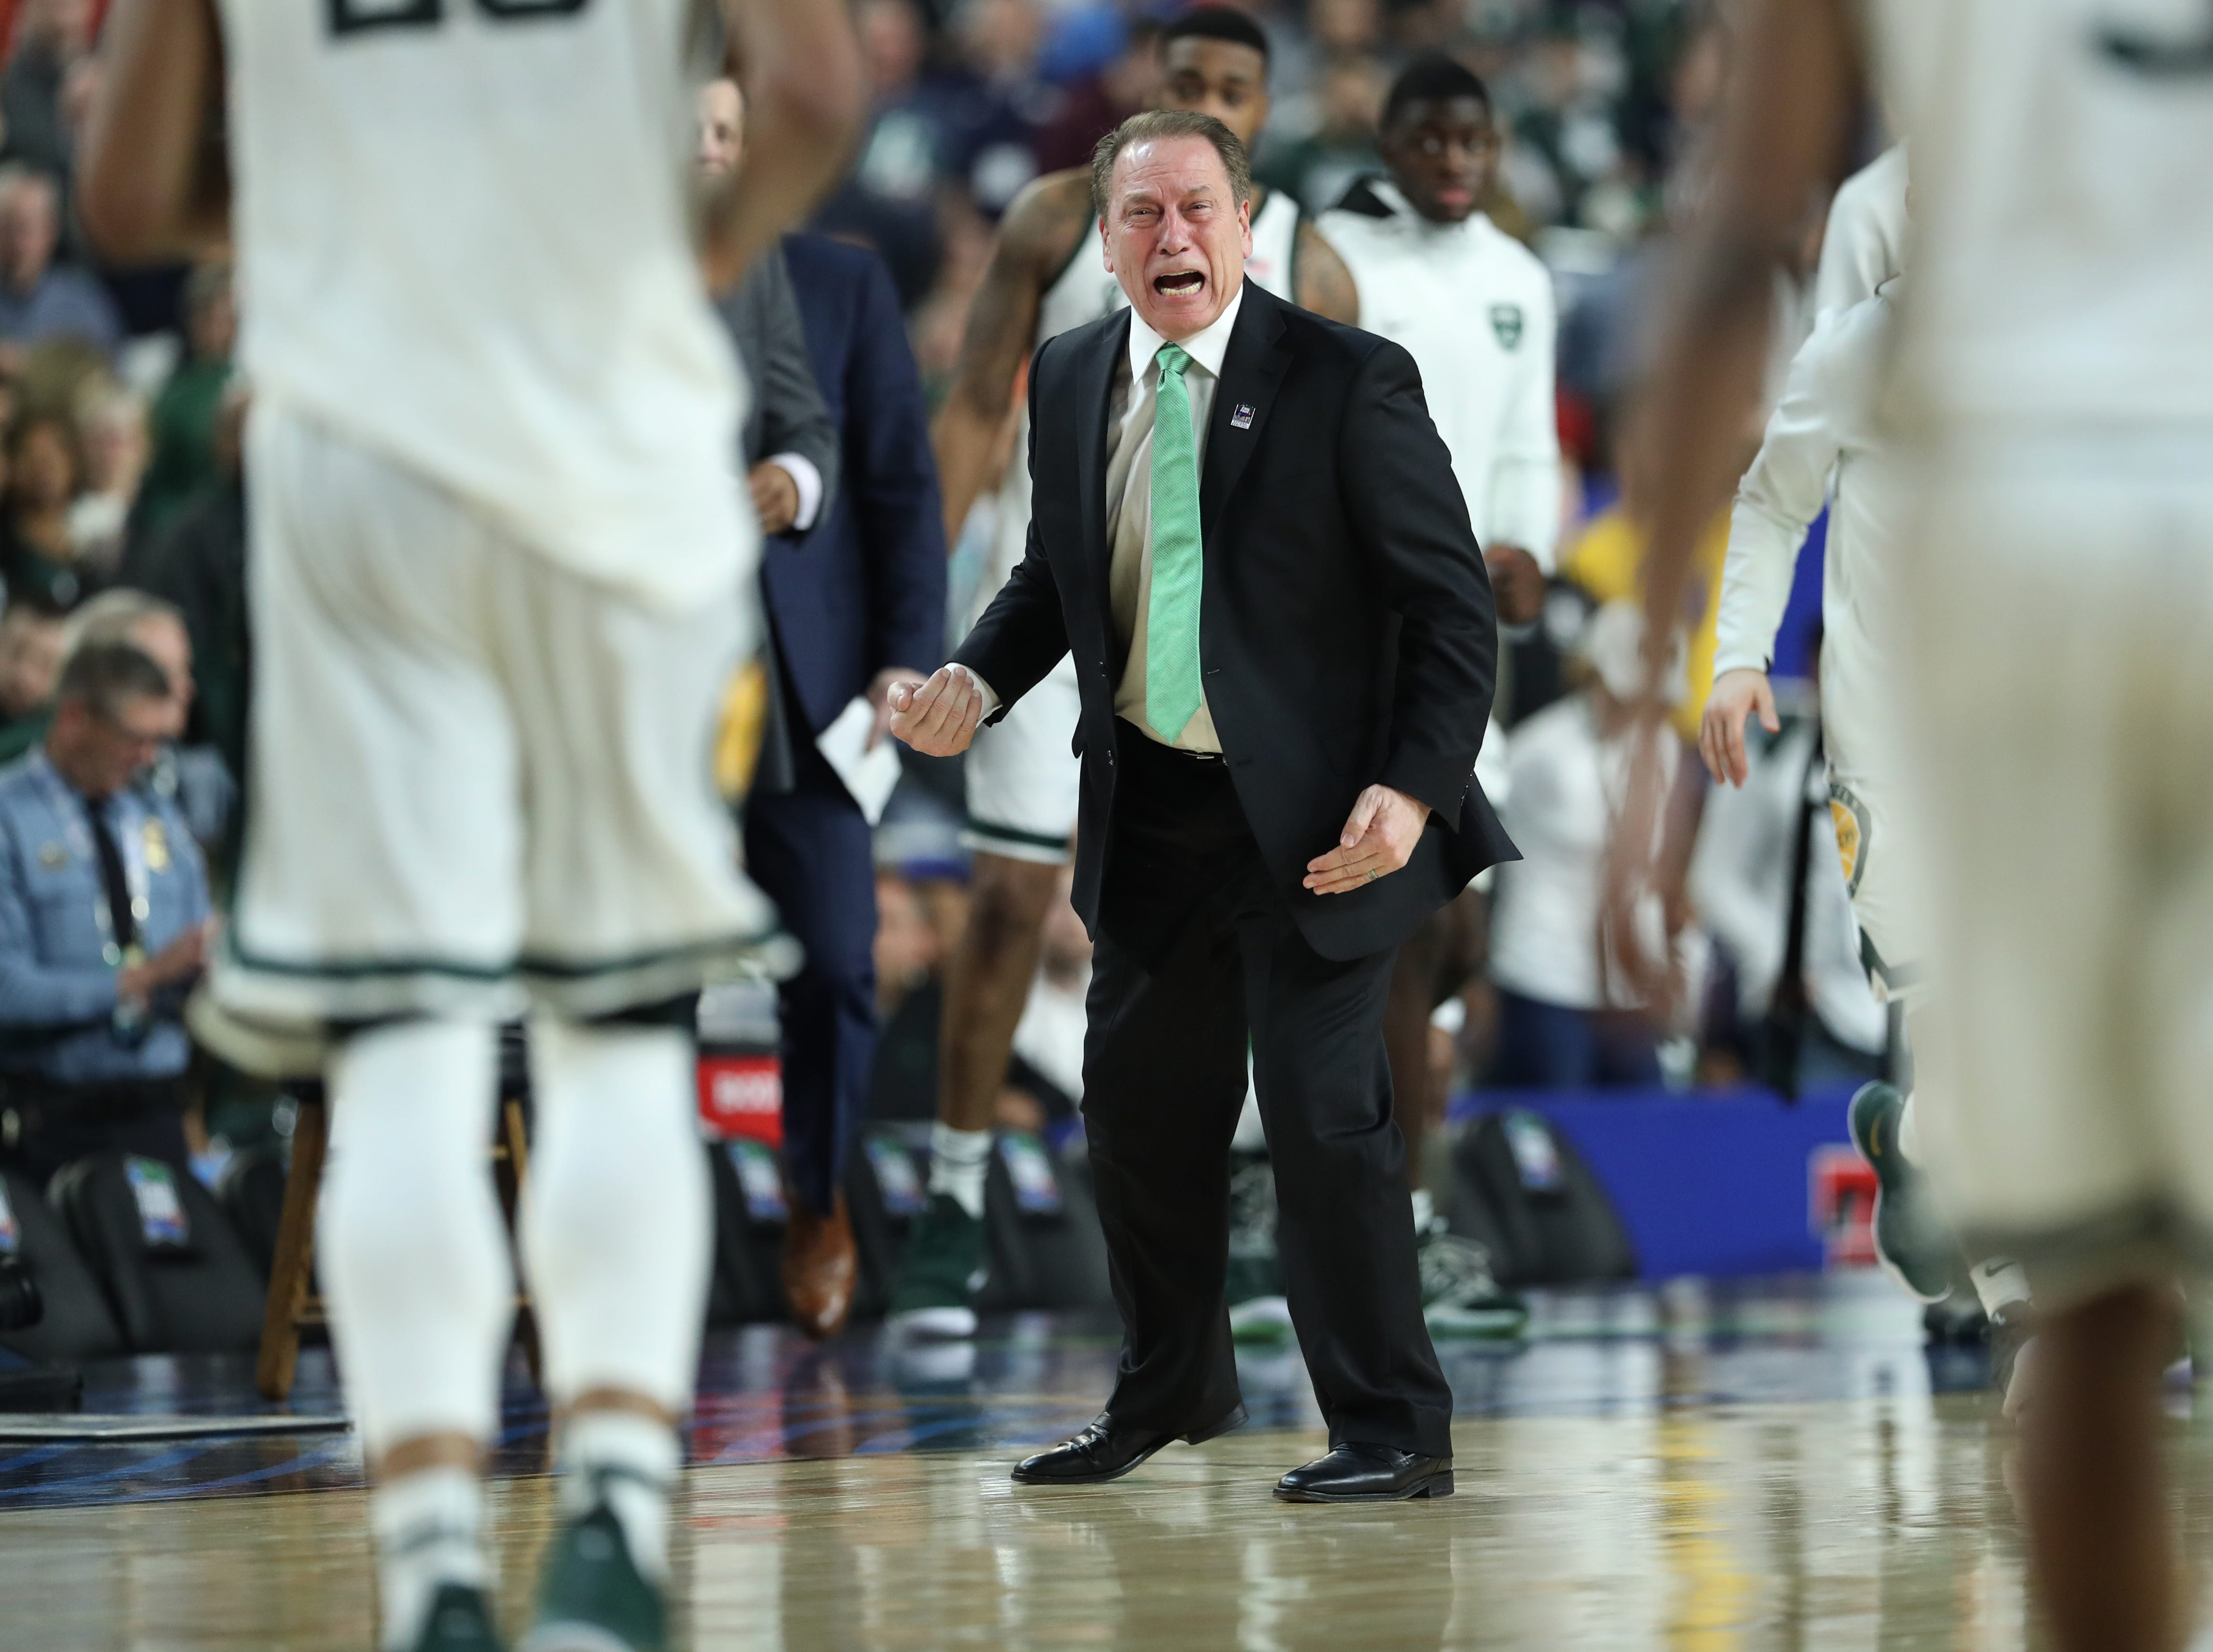 Michigan State head coach Tom Izzo reacts in the second half of the Final Four game at U.S. Bank Stadium in Minneapolis, Minnesota on Saturday, April 06, 2019.